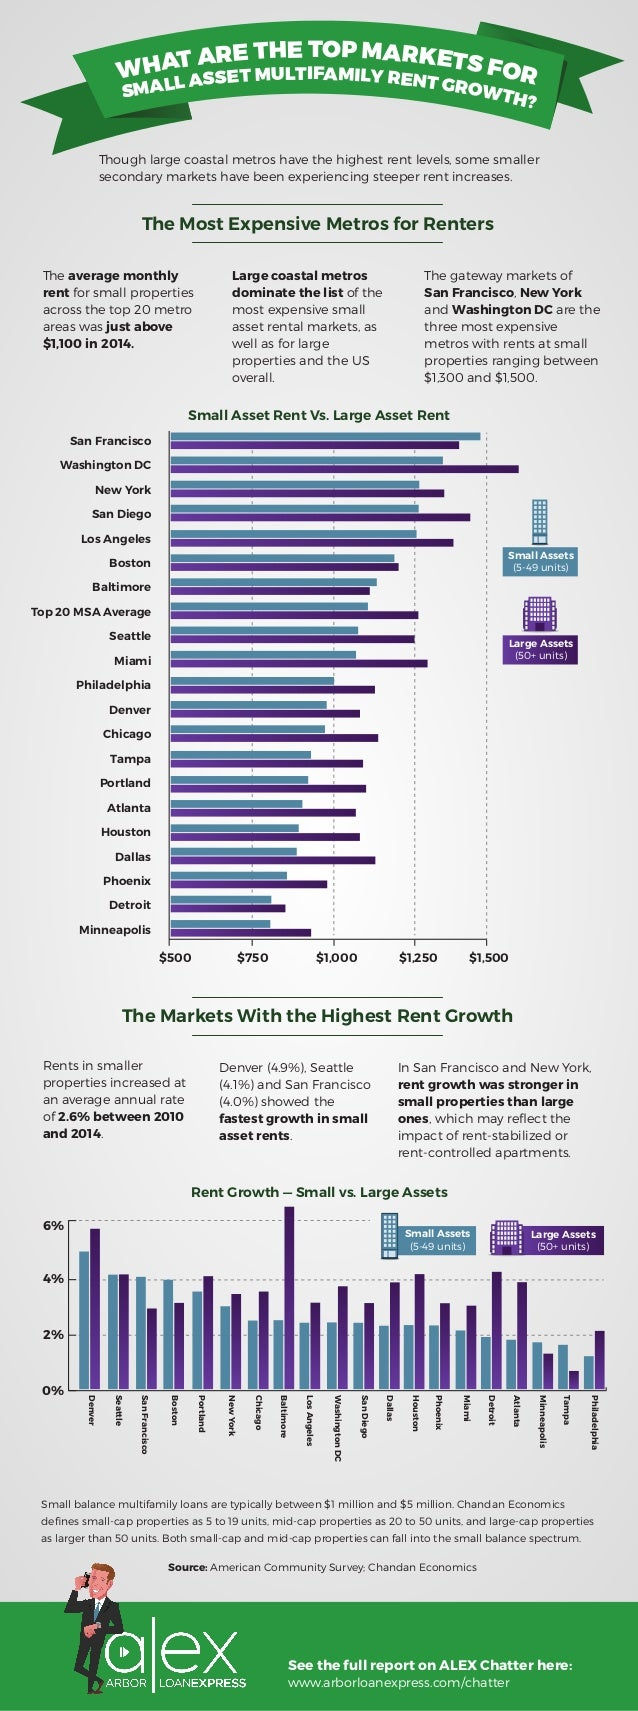 WHAT ARE THE TOP MARKETS FOR SMALL ASSET MULTIFAMILY RENT GROWTH? Though large coastal metros have the highest rent levels...